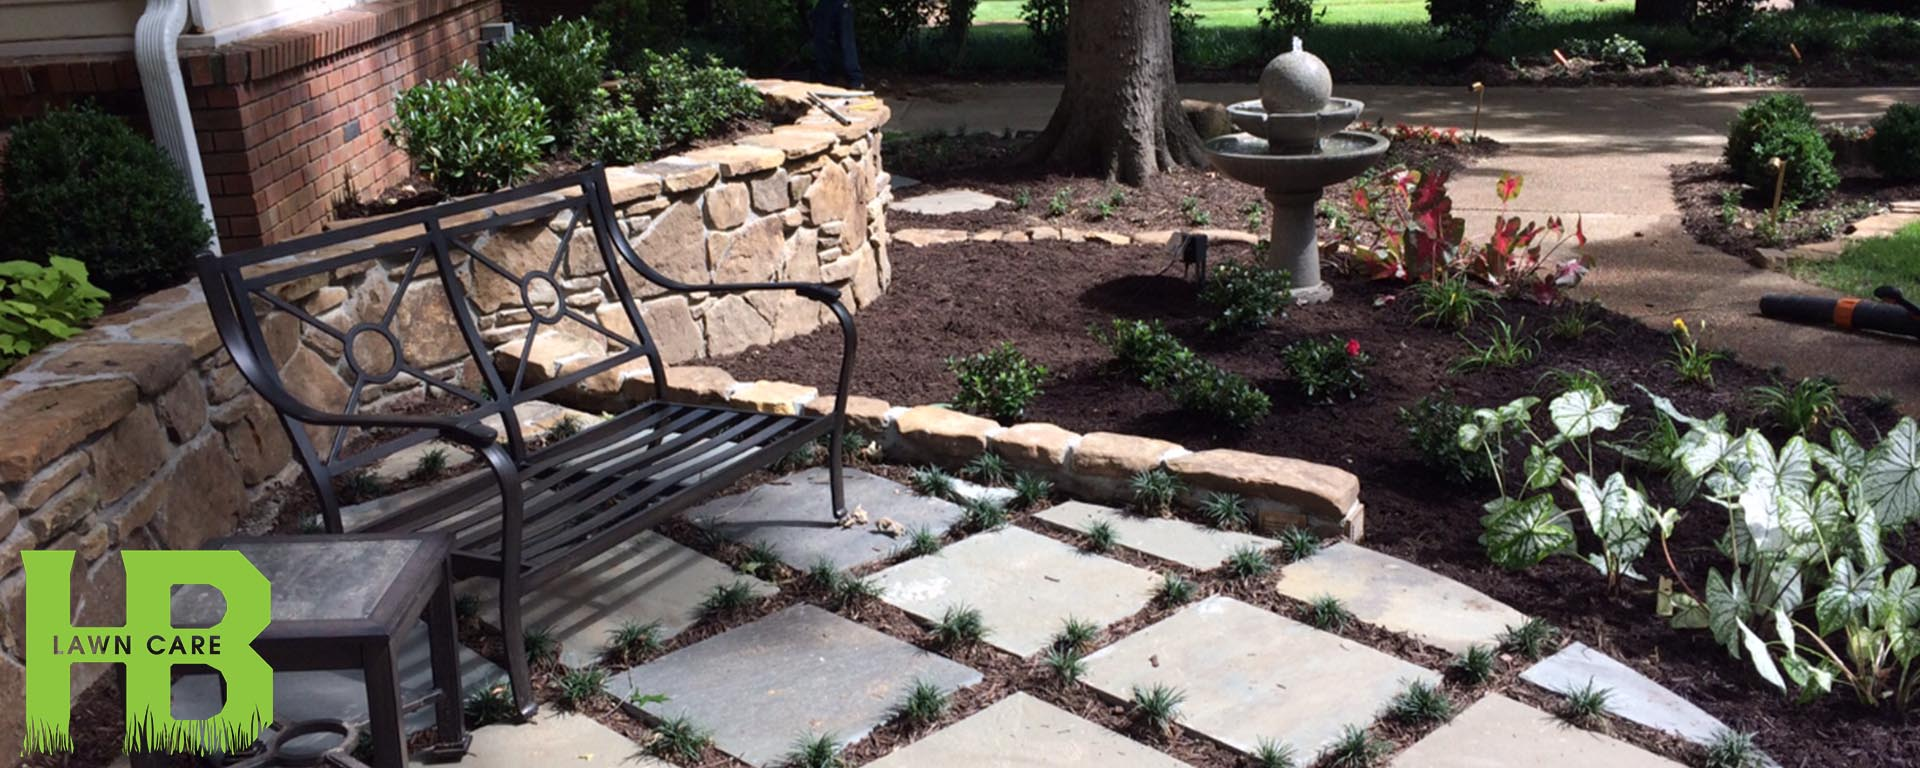 Landscaping service in Cape Coral and Fort Myers Florida